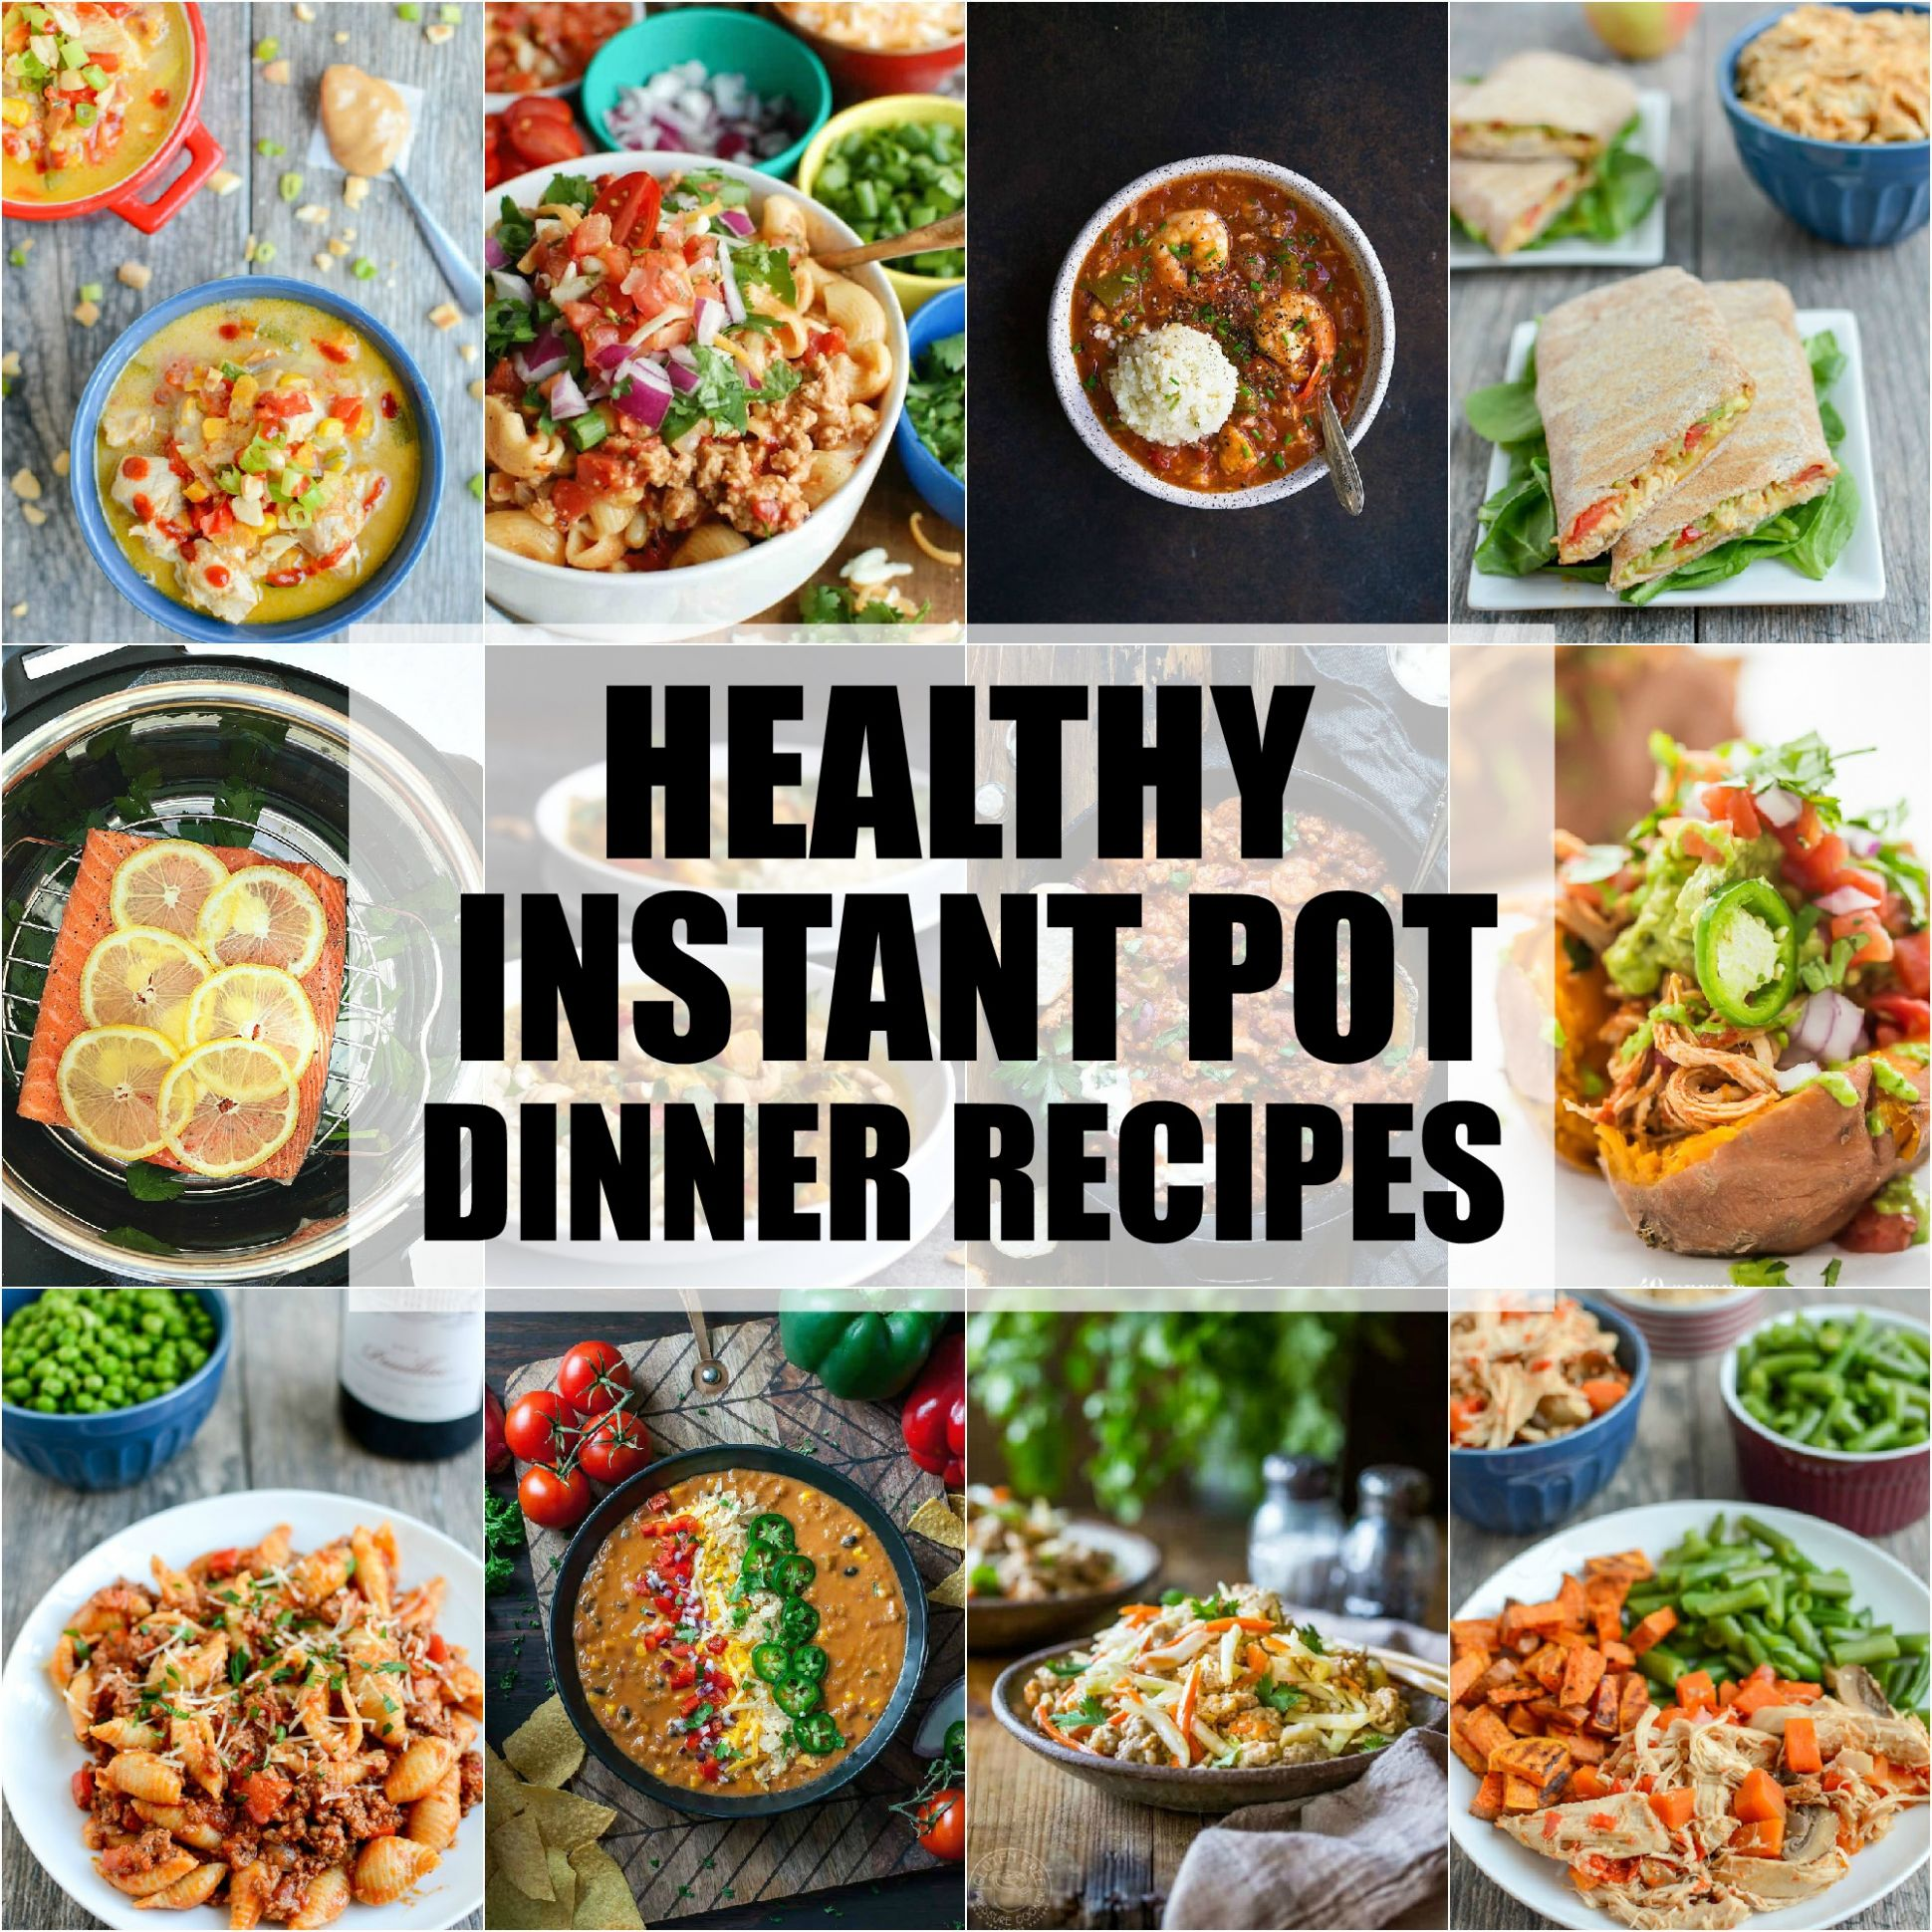 Healthy Instant Pot Dinner Recipes | The Lean Green Bean - Dinner Recipes Instant Pot